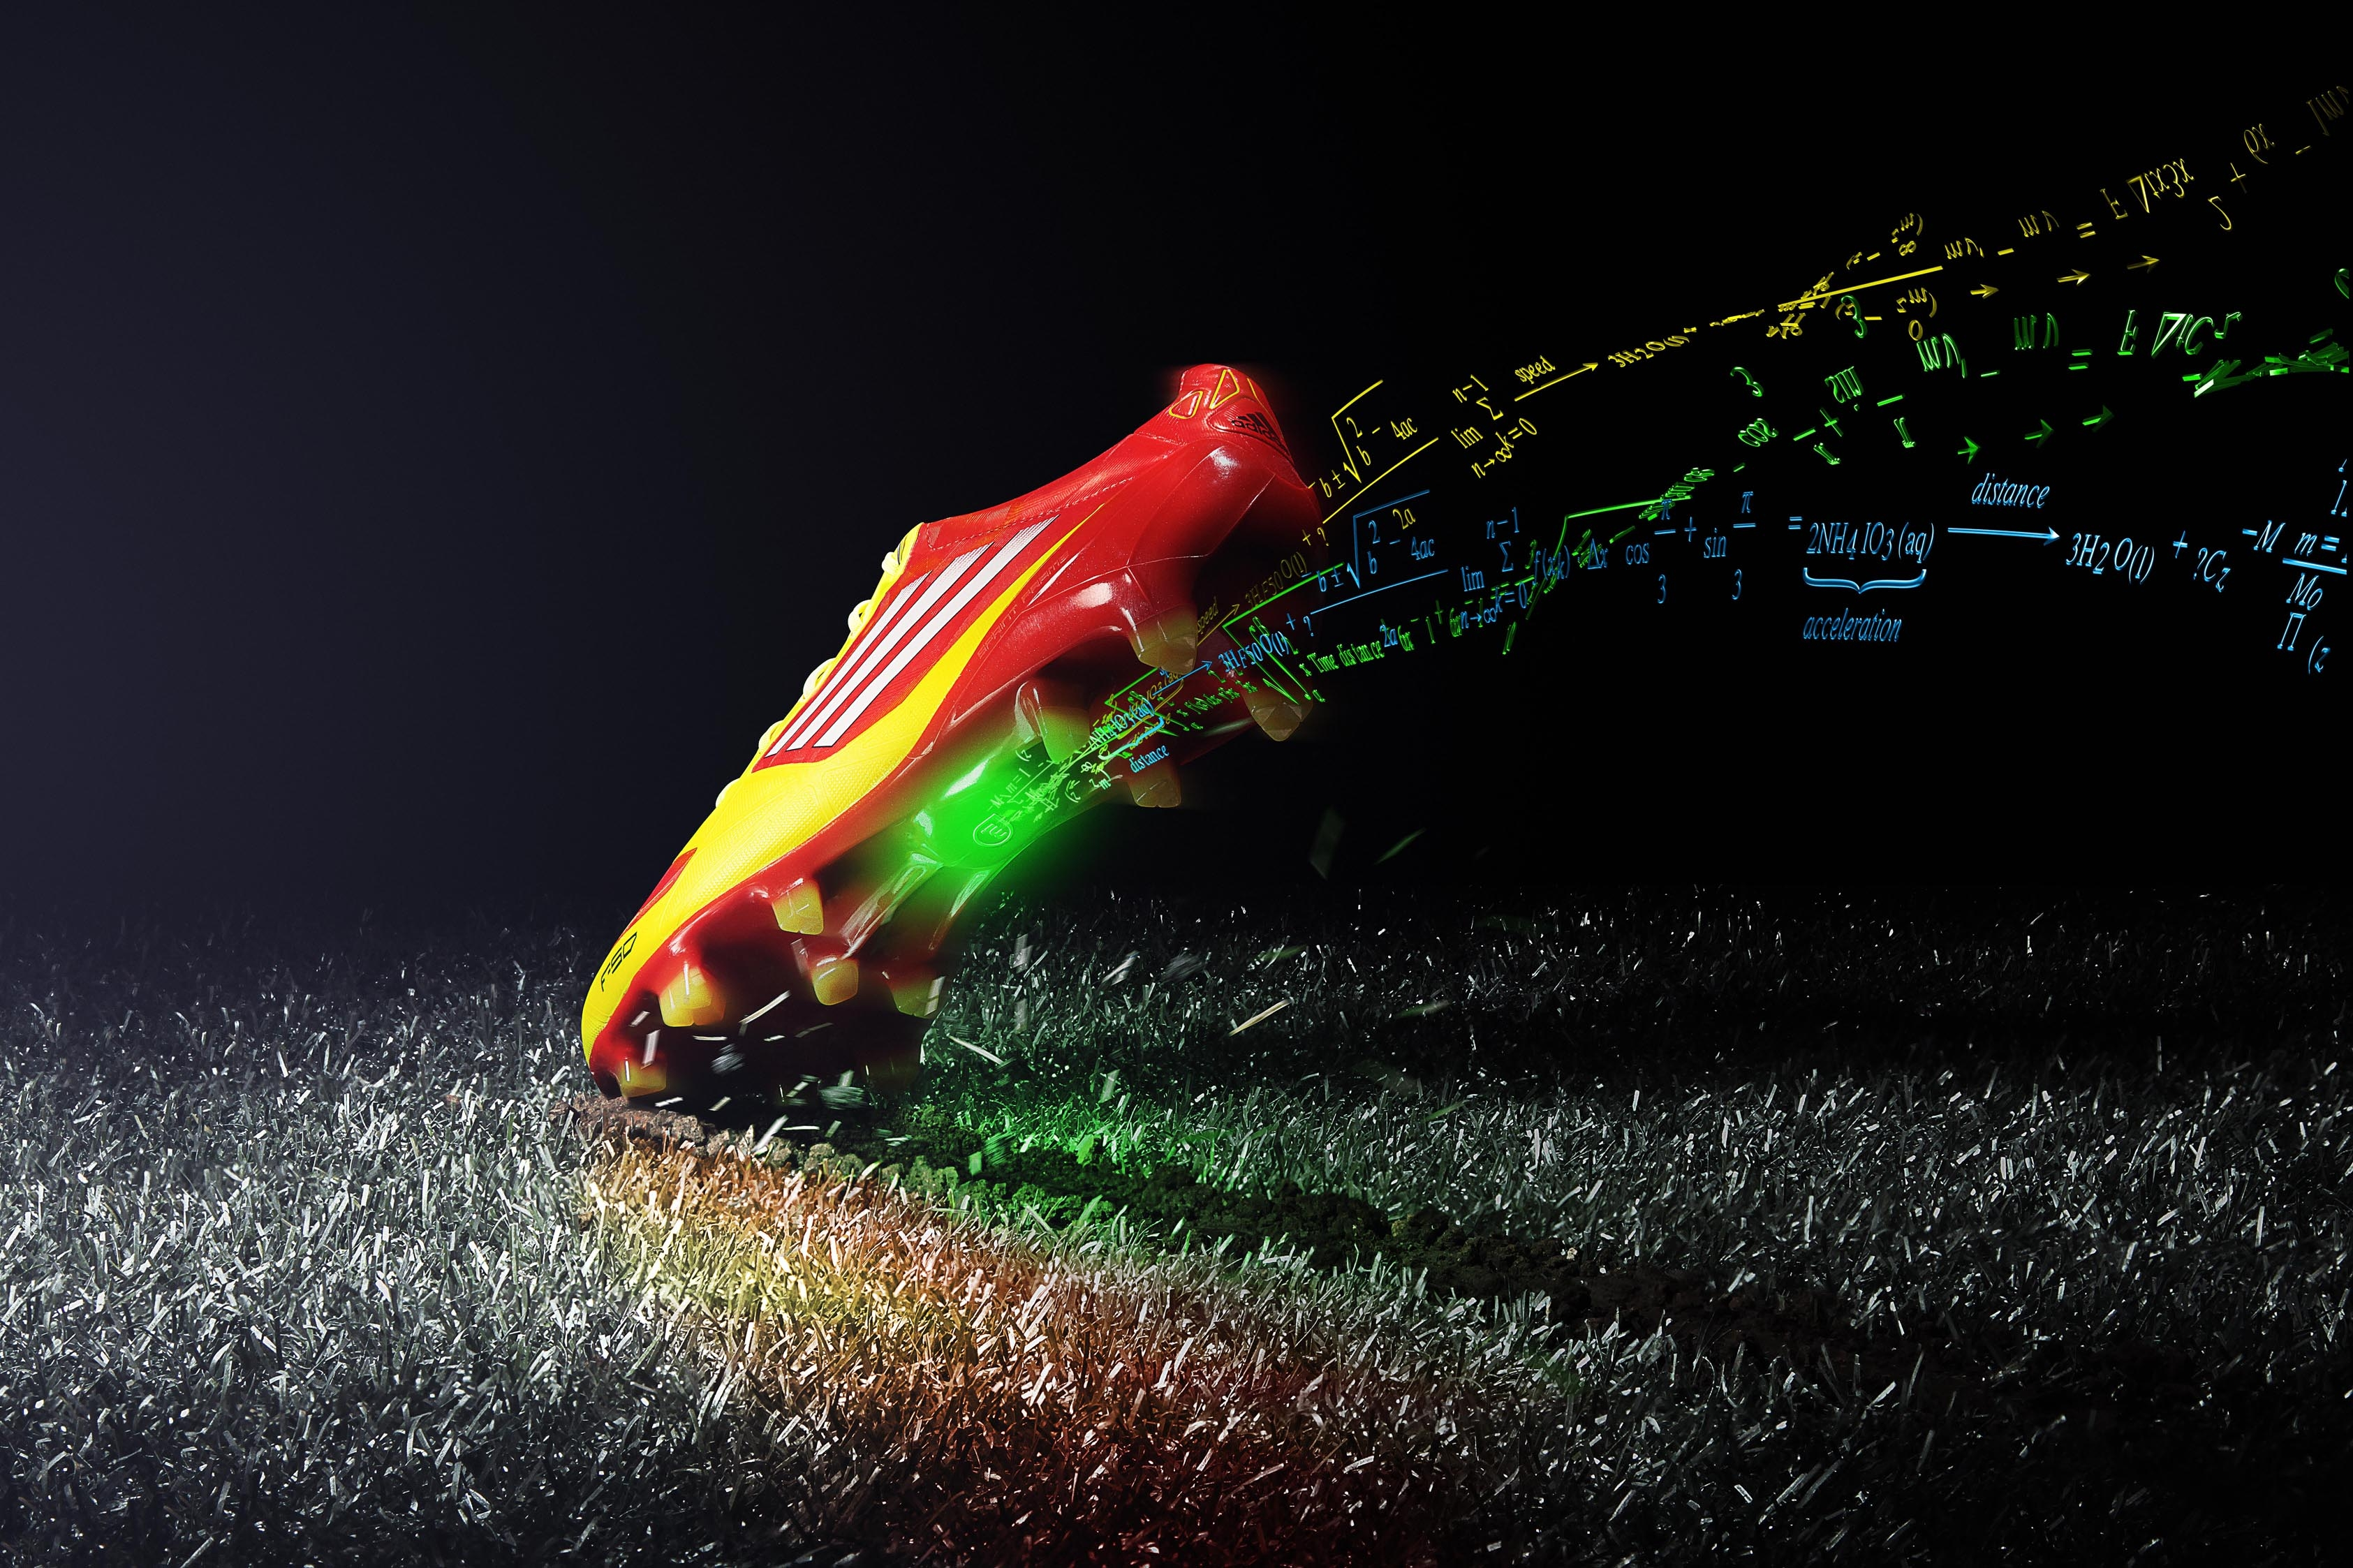 112308 download wallpaper Cleats, Shoes, Footwear, Sports, Calculations, Formula, Black Background, Football screensavers and pictures for free